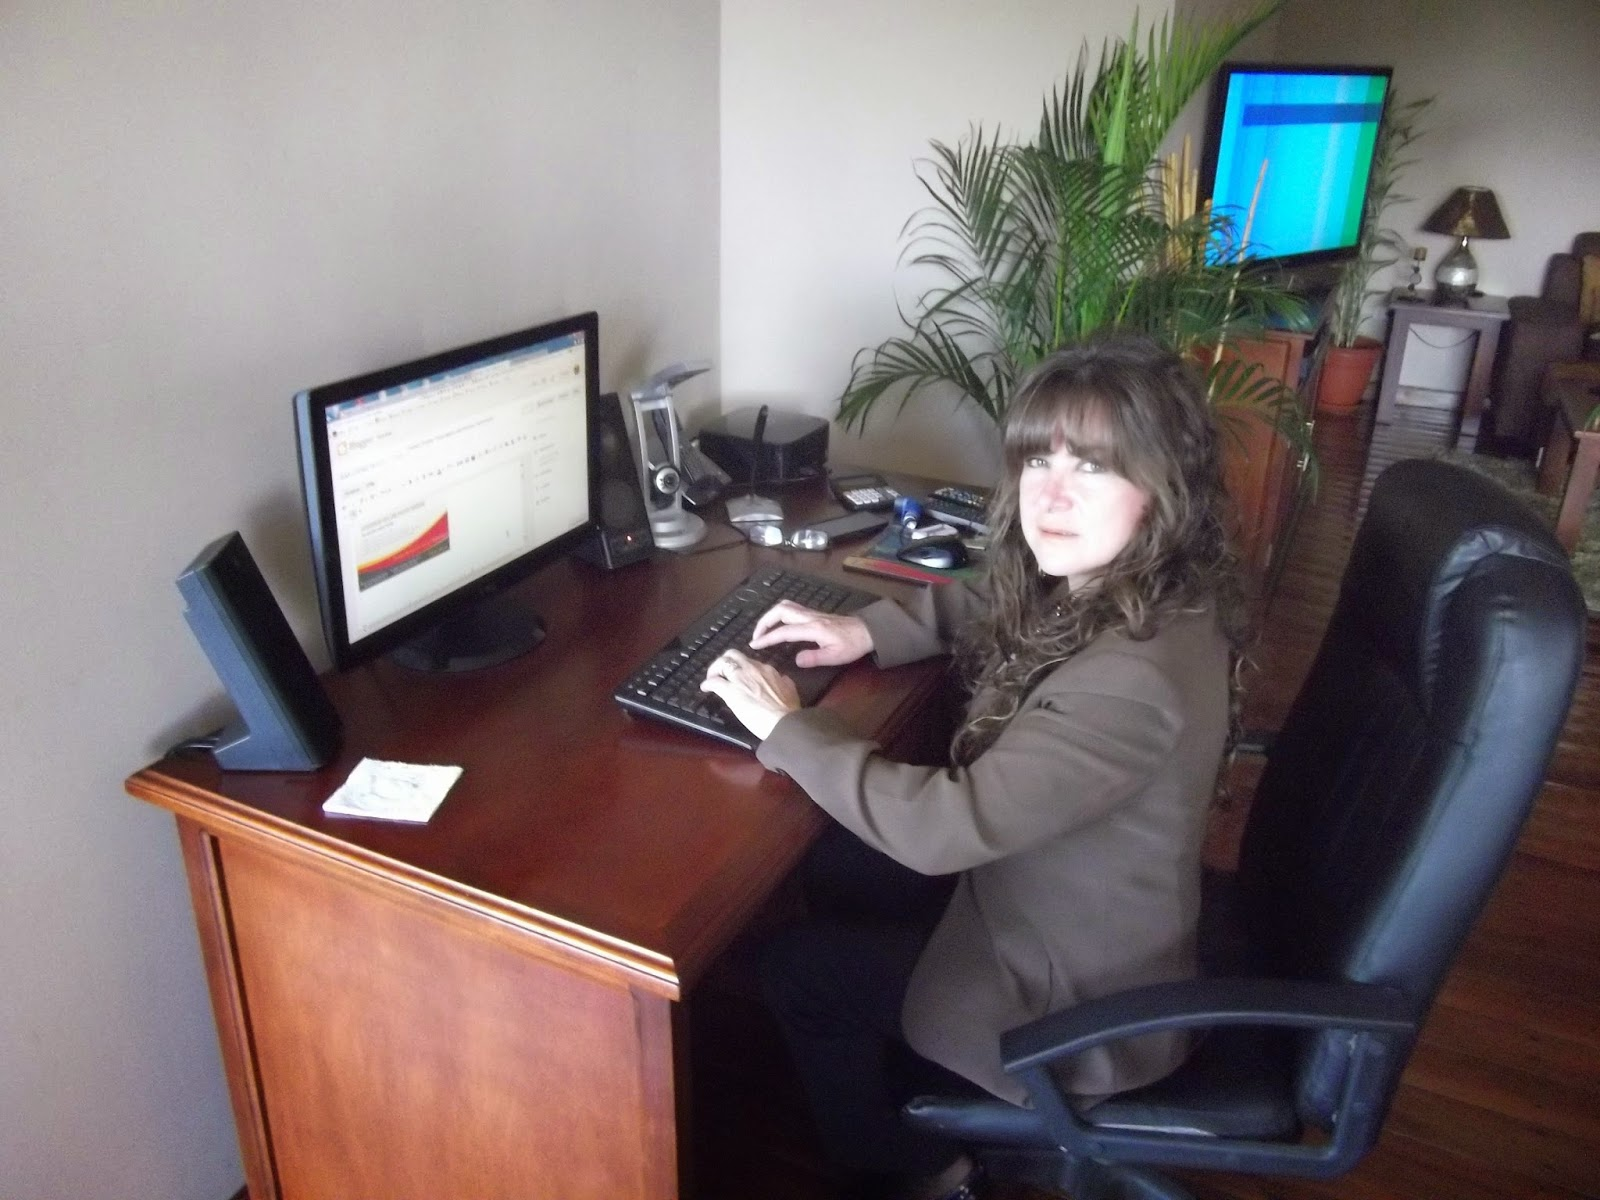 e mail for visa requirements and information on starting the process from your country e mail manelacardcam hotmail com from ecuador cell 0993309682